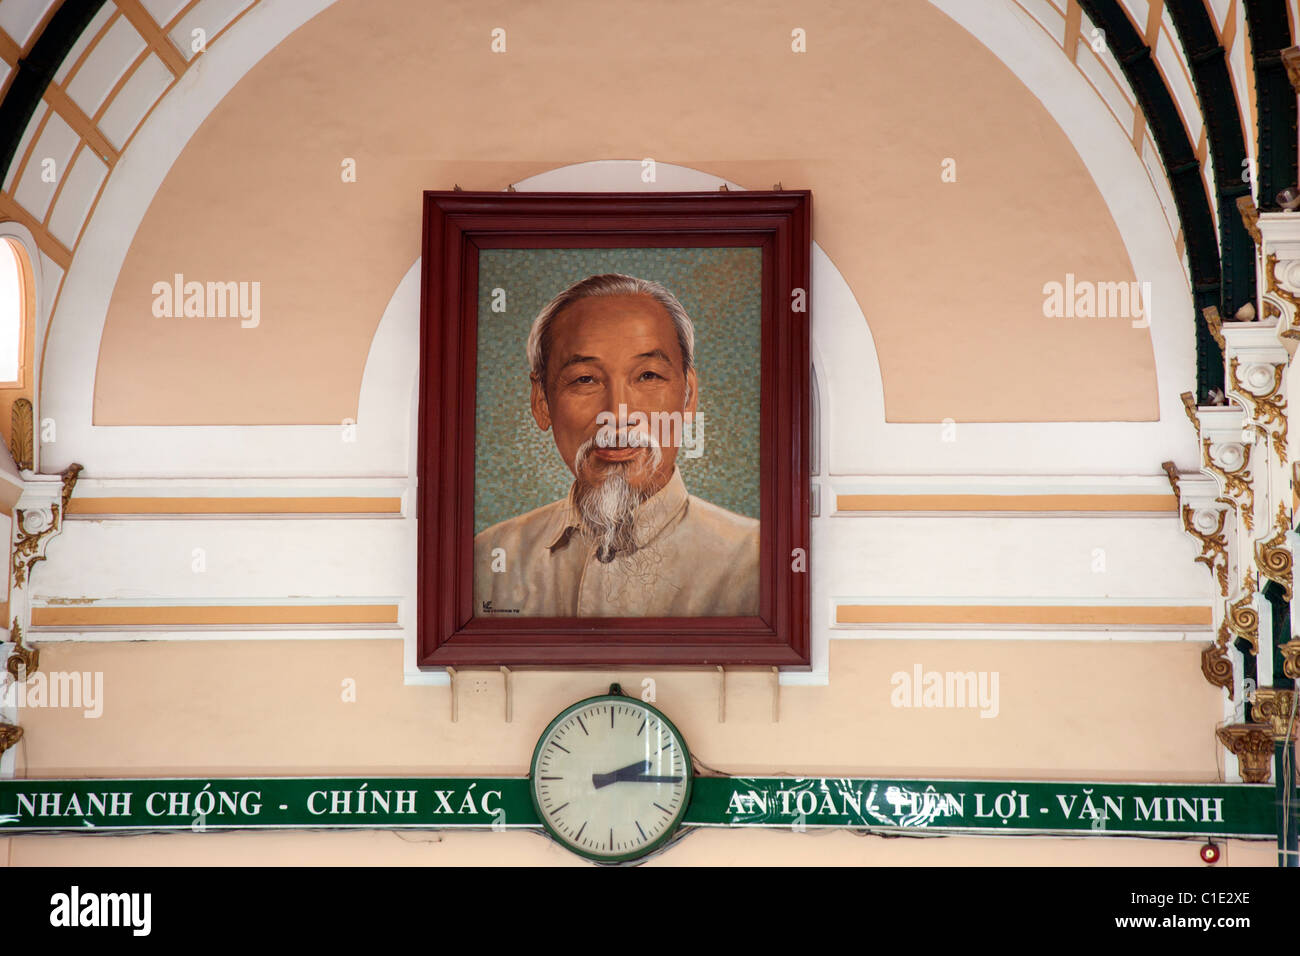 Picture of Ho Chi Minh in the Main Post Office in Saigon - Stock Image